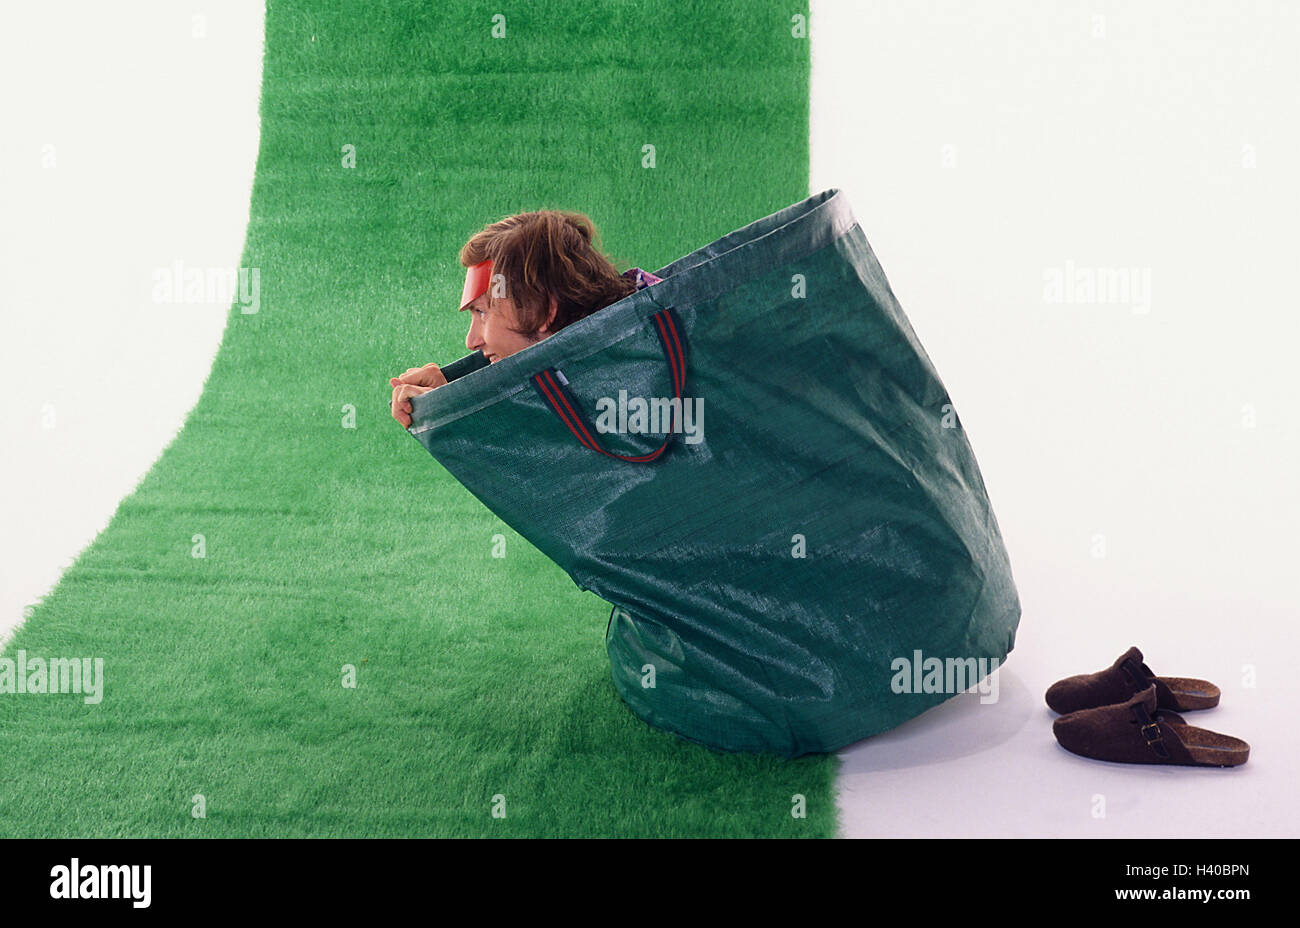 Man, sit young, foliage pouch, art turfs, 20-30 years, fun, fun, funnily, cheerfulness, pouch, case, green, icon, - Stock Image